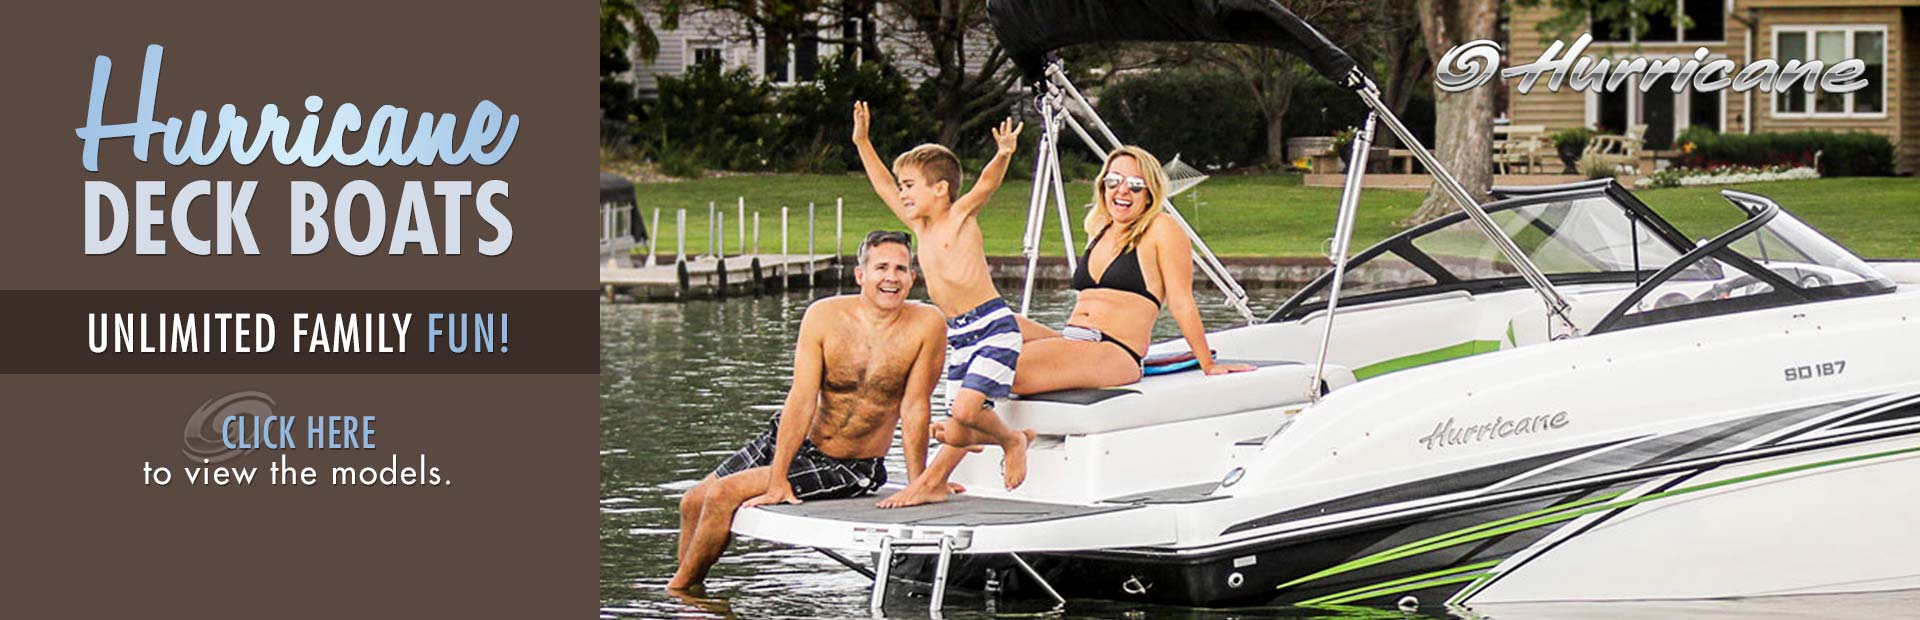 Hurricane Deck Boats: Click here to view the models.